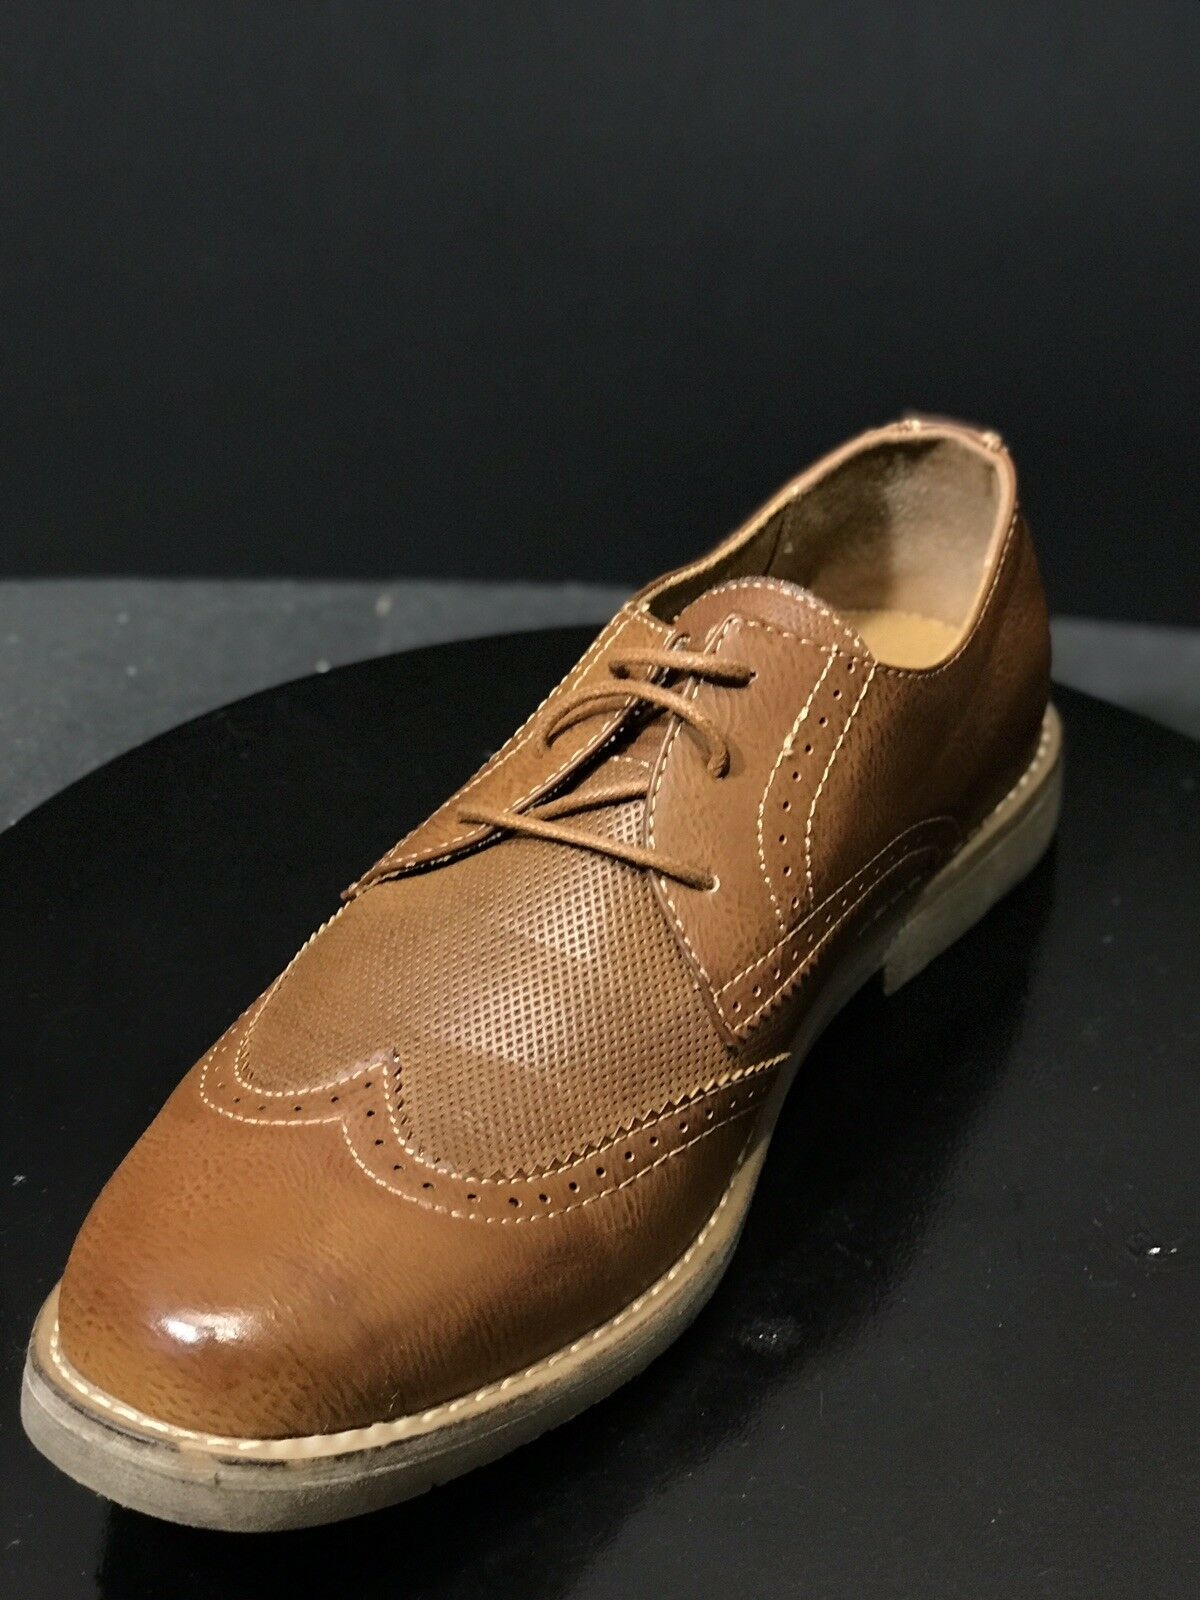 MADDEN Brown Oxford Dress PU Upper Mens shoes Size US 11 M